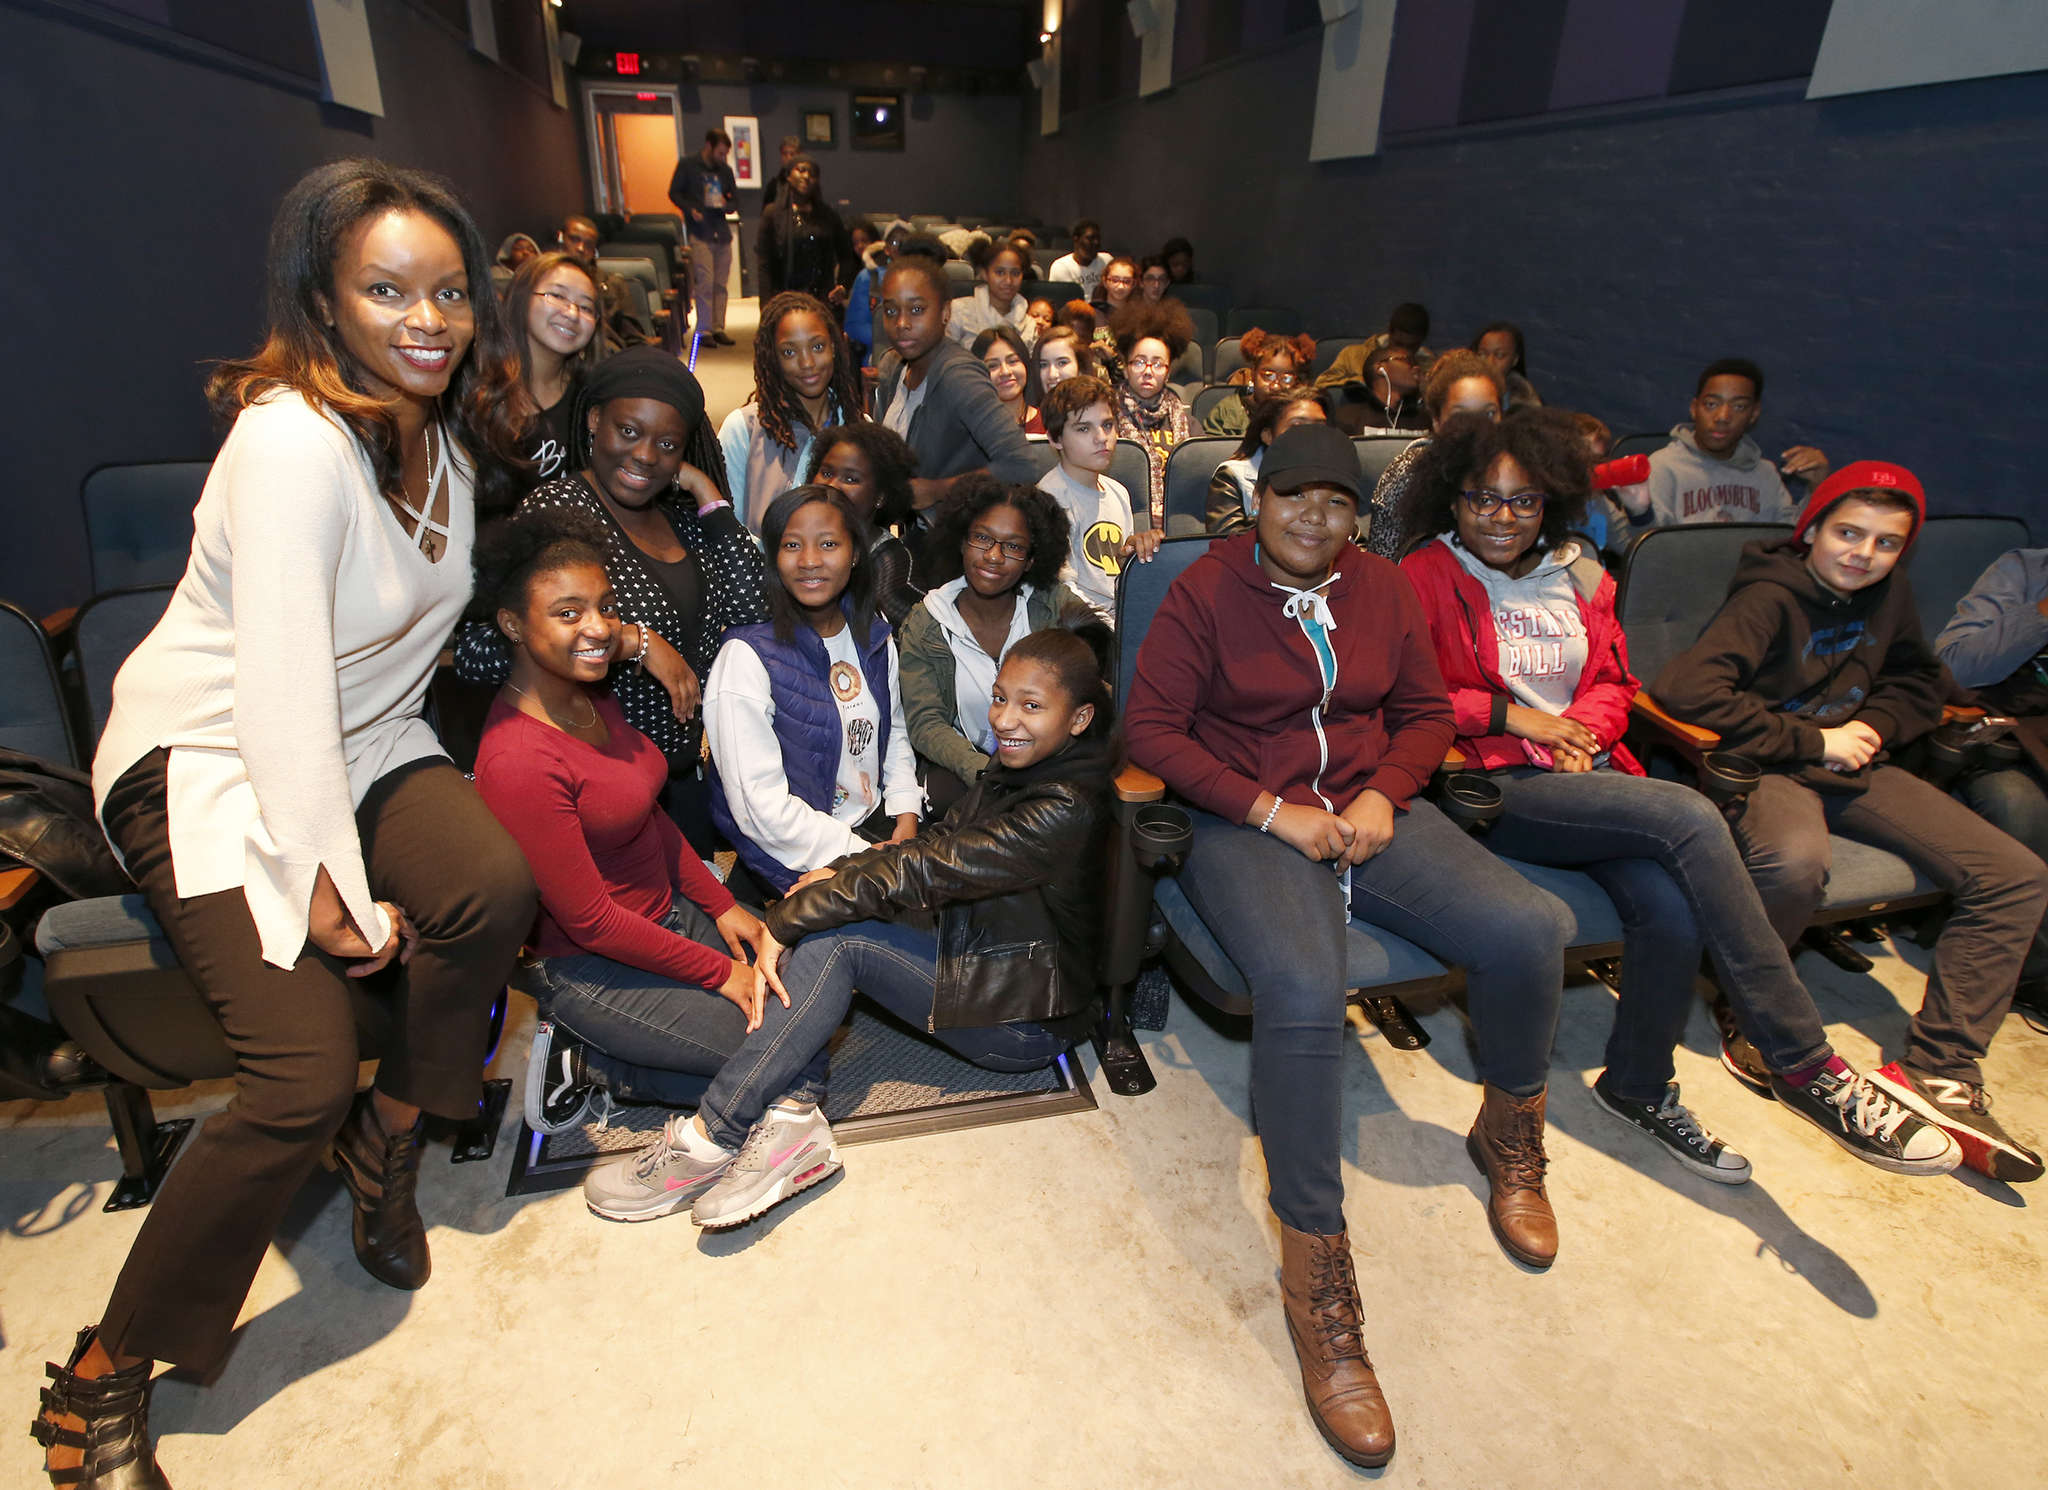 """People Paper columnist Jenice Armstrong with students from Science Leadership Academy before a screening of the new film """"Loving."""" CHARLES FOX / Staff Photographer"""